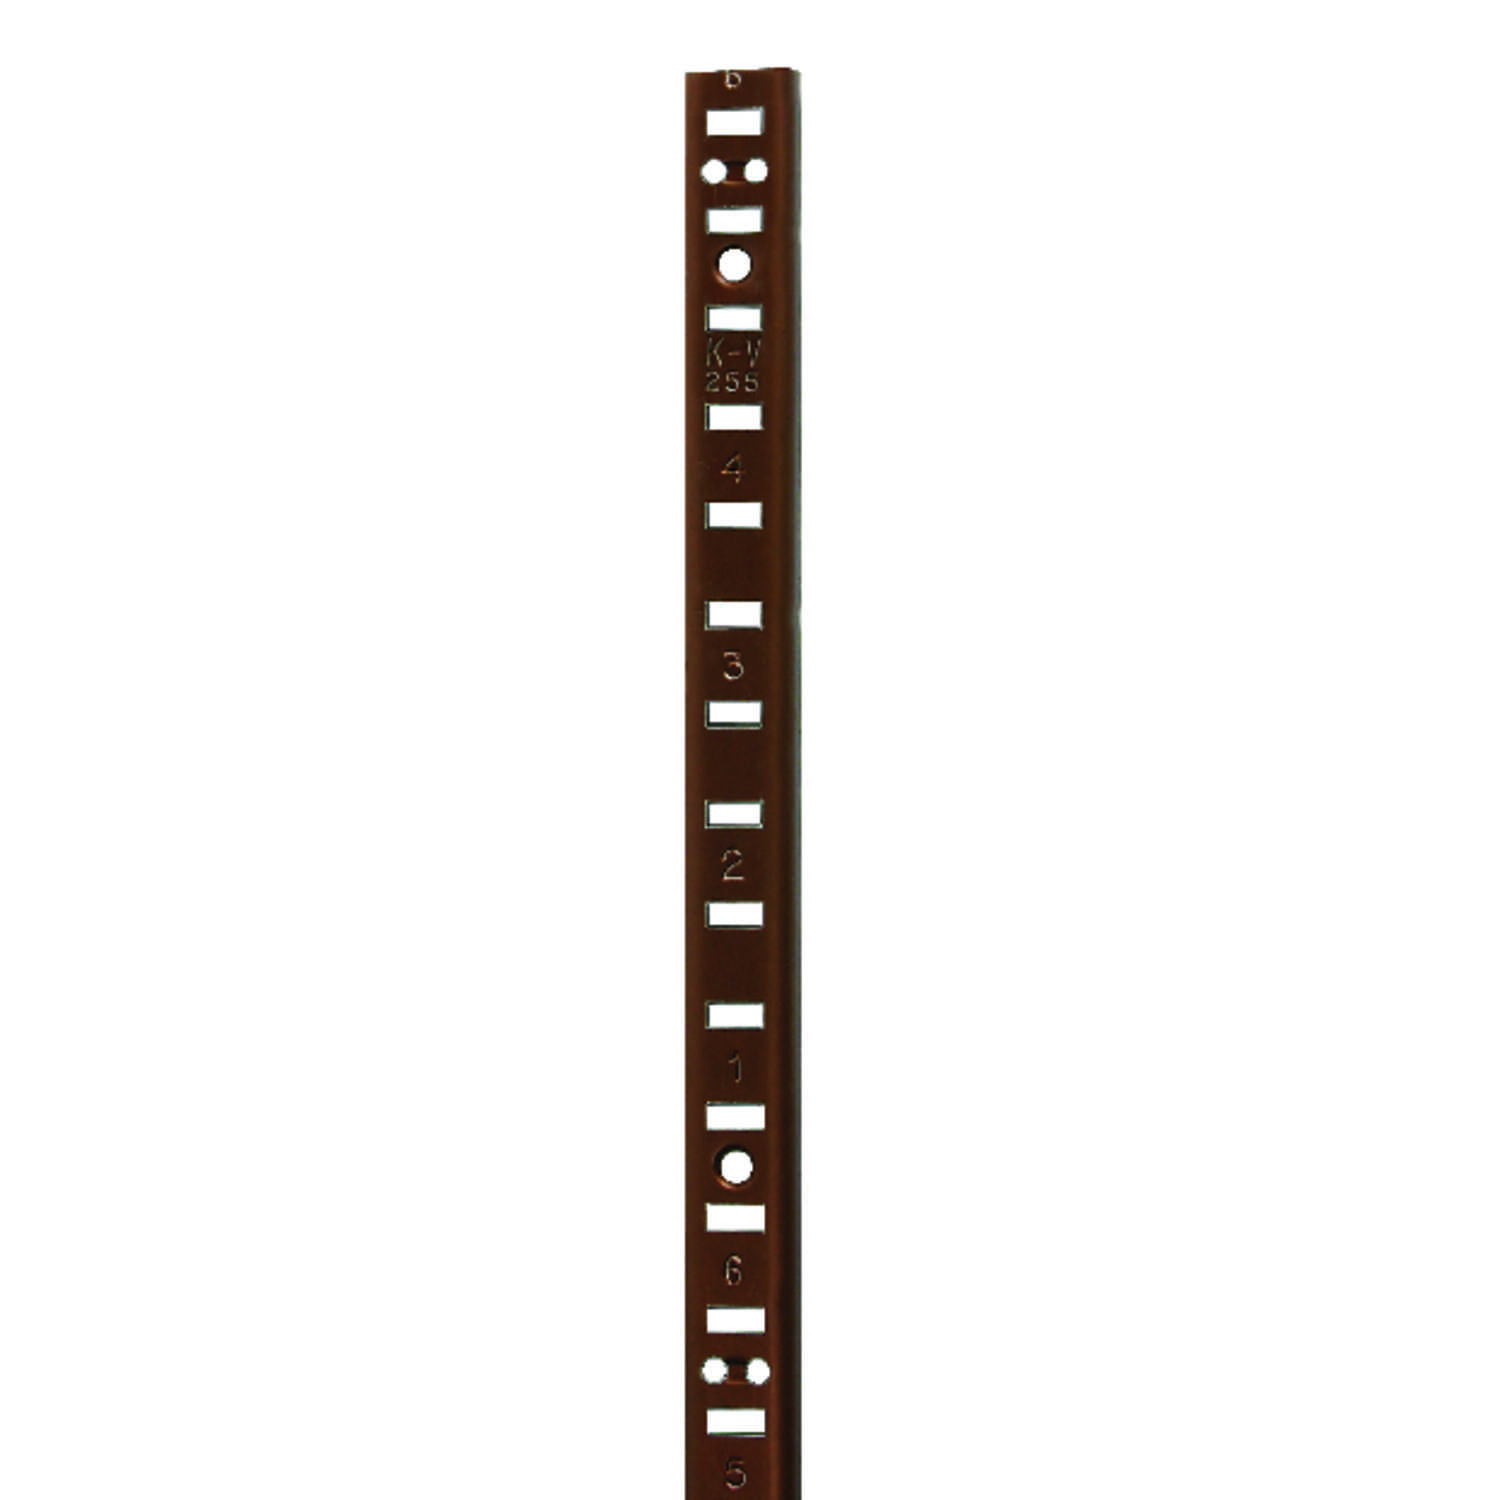 Knape & Vogt  Aluminum  Heavy Duty Shelf  Pilaster  0.25 in. H x 72 in. L 250 lb.